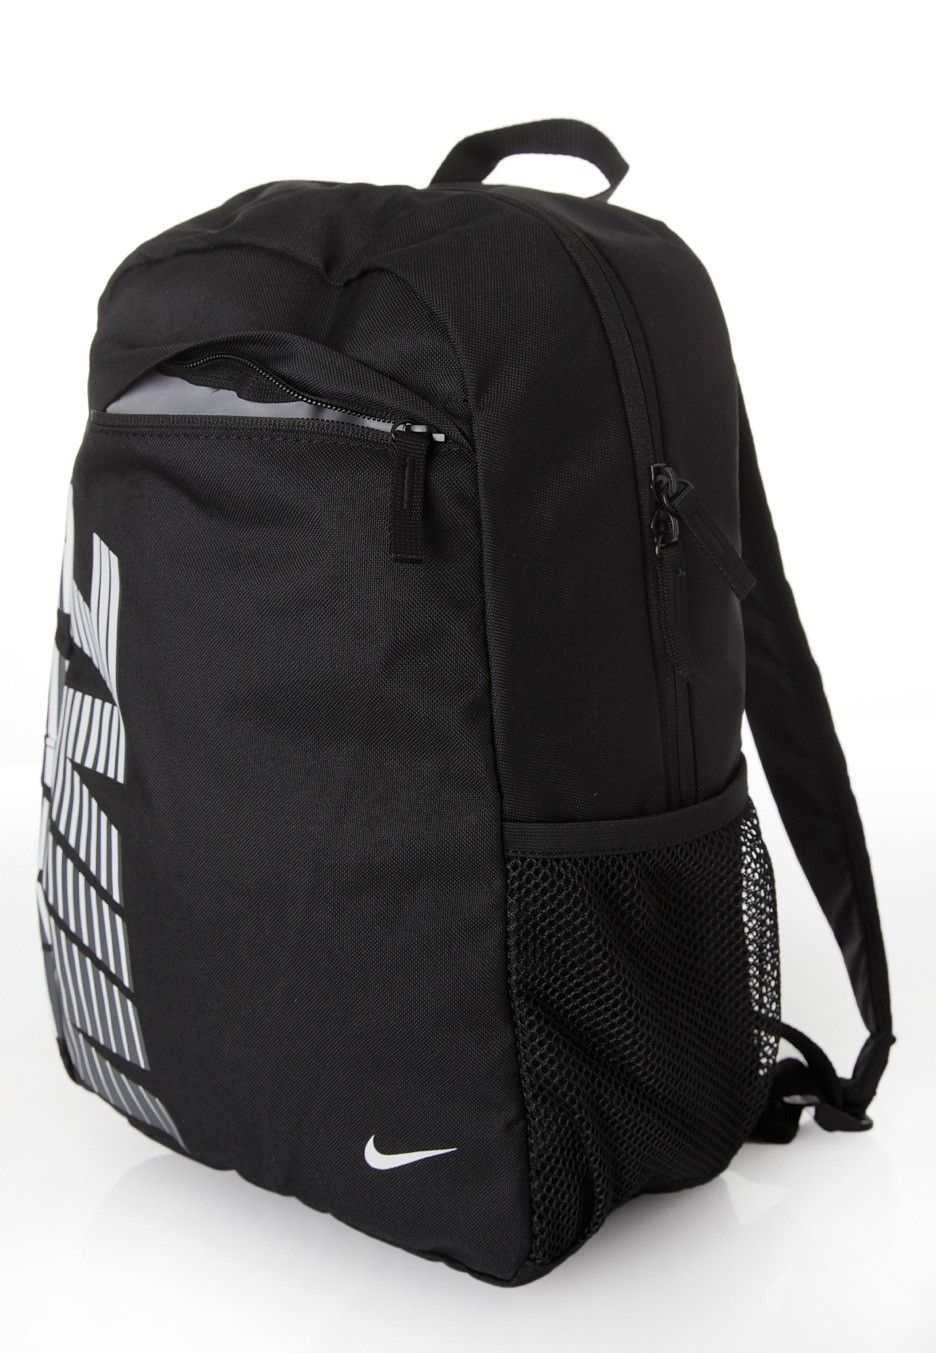 Nike - Classic Sand Black - Backpack - Official Merchandise Online Shop -  Impericon.com Worldwide 40 e6171f8d54dfc